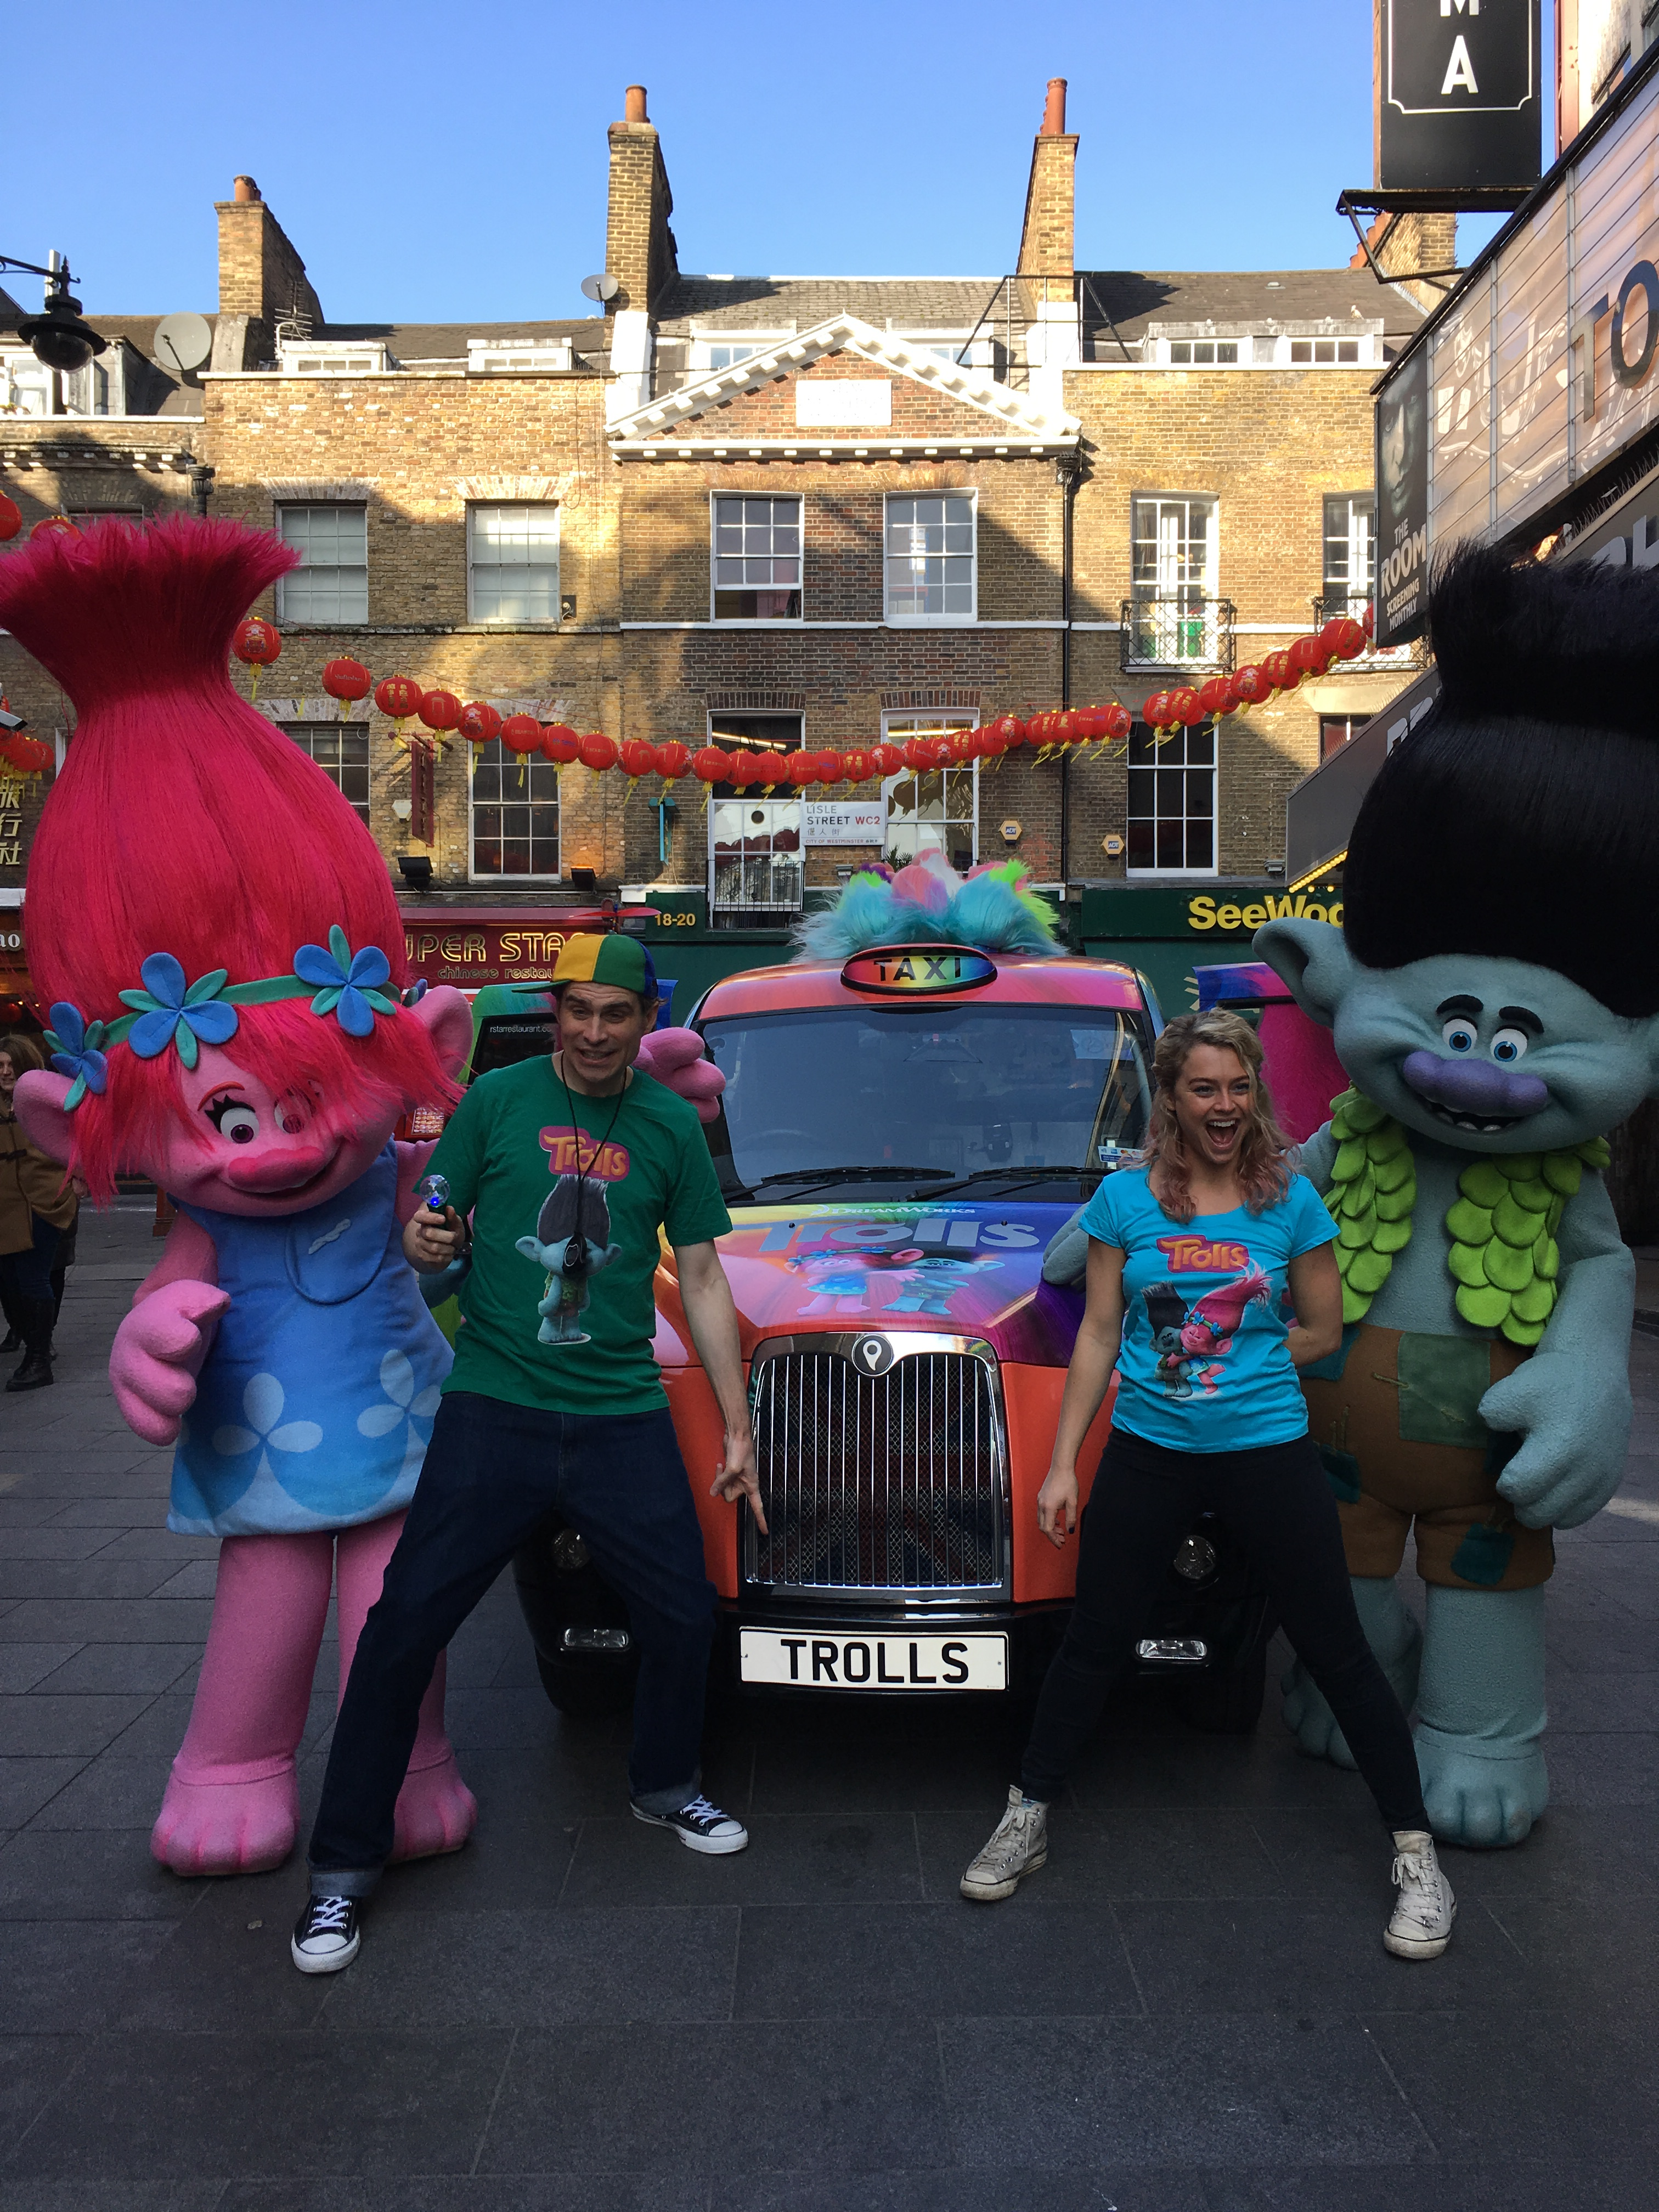 Two enthusastic brightly dressed presenters stand next to two large colourful costume characters from the movie TROLLS, infront of a branded London Taxi cab. The cab is rainbow coloured, and has Trolls branding on it, and the number plate 'TROLLS'.